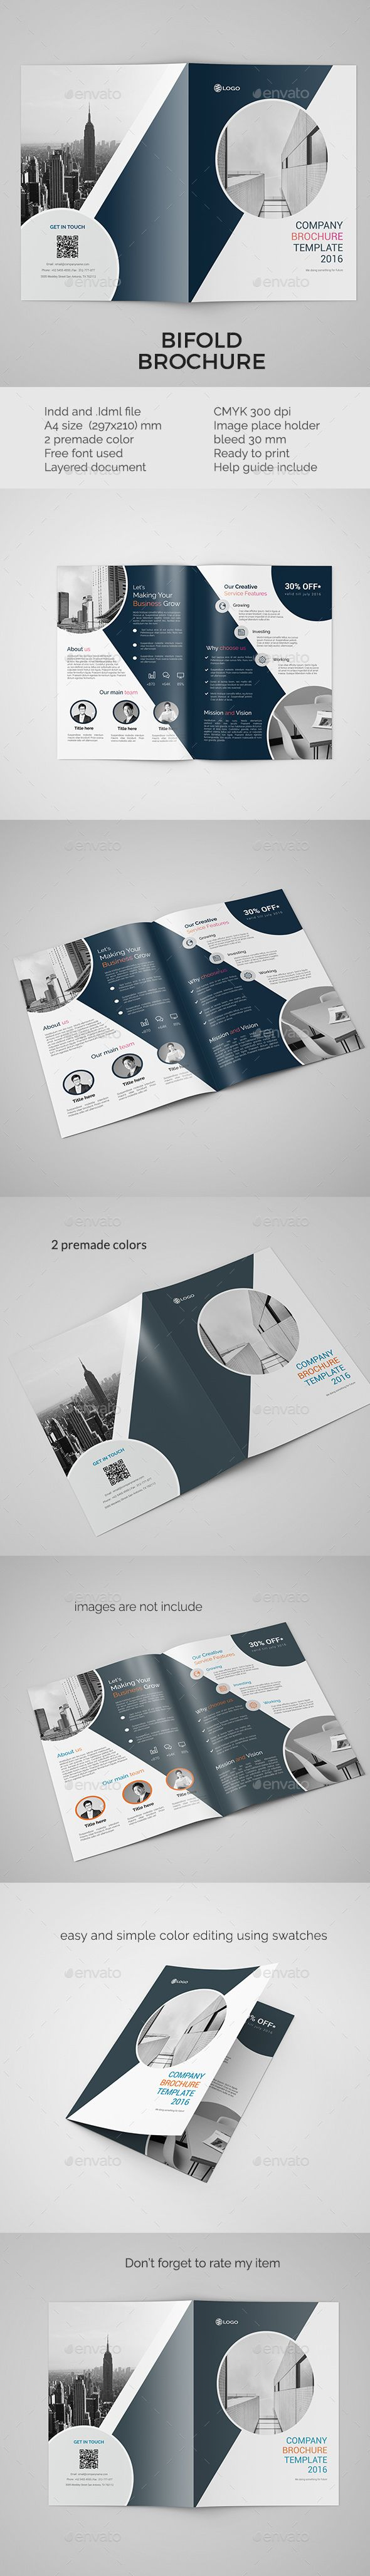 Best Inspire Me Images On Pinterest - Bi fold brochure template indesign